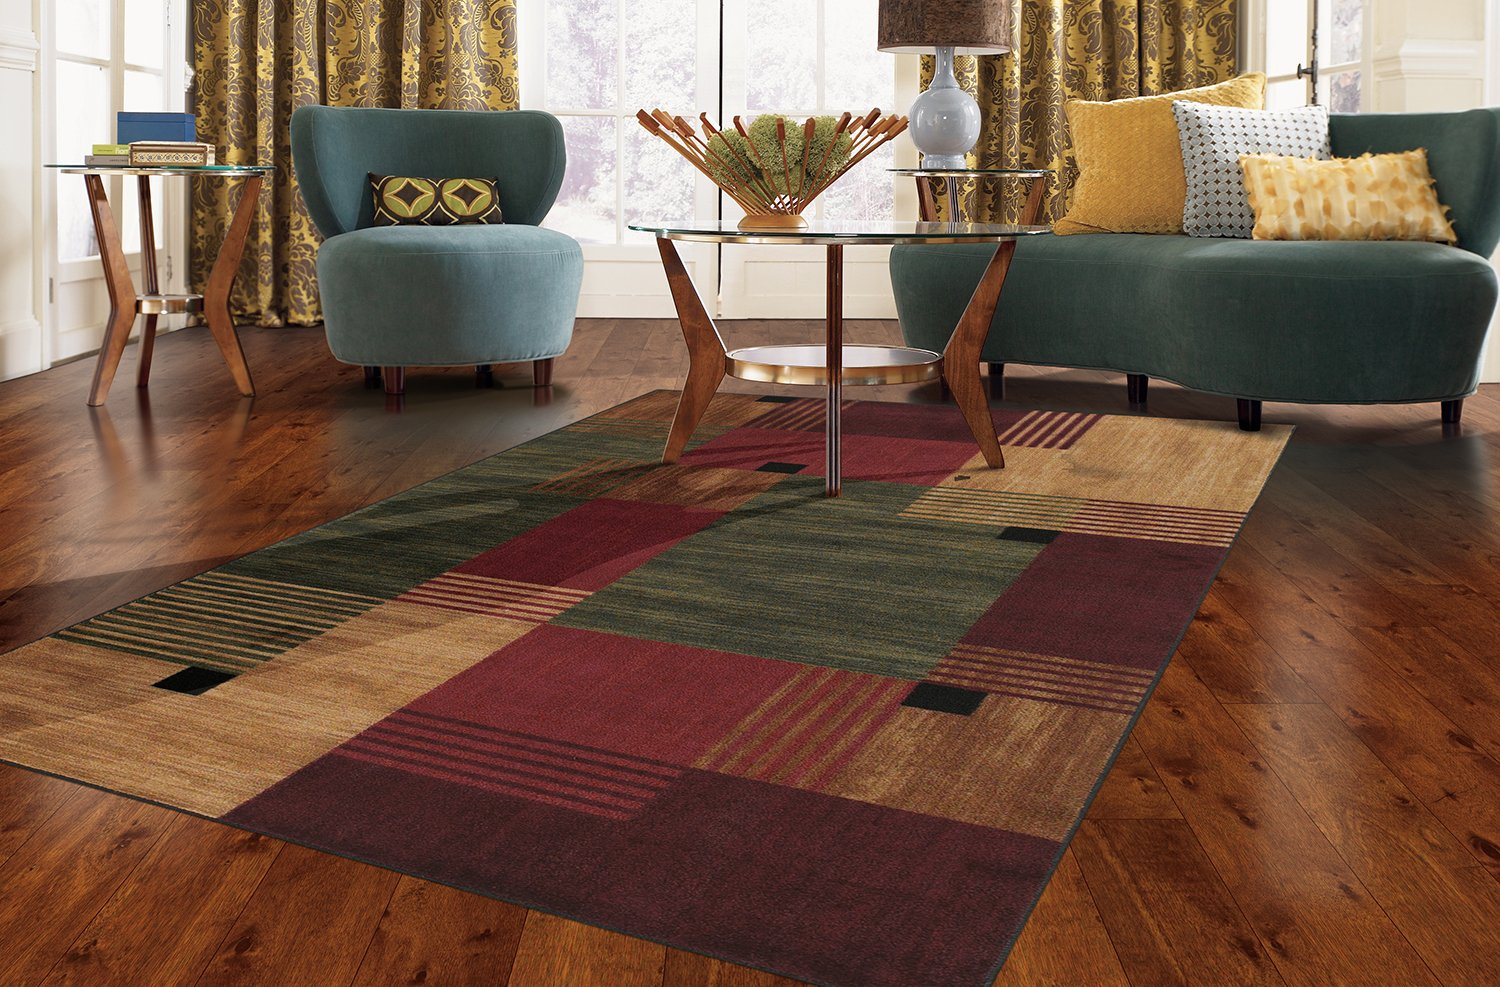 Mohawk Home New Wave Alliance Multi Rug, 2' x 5'